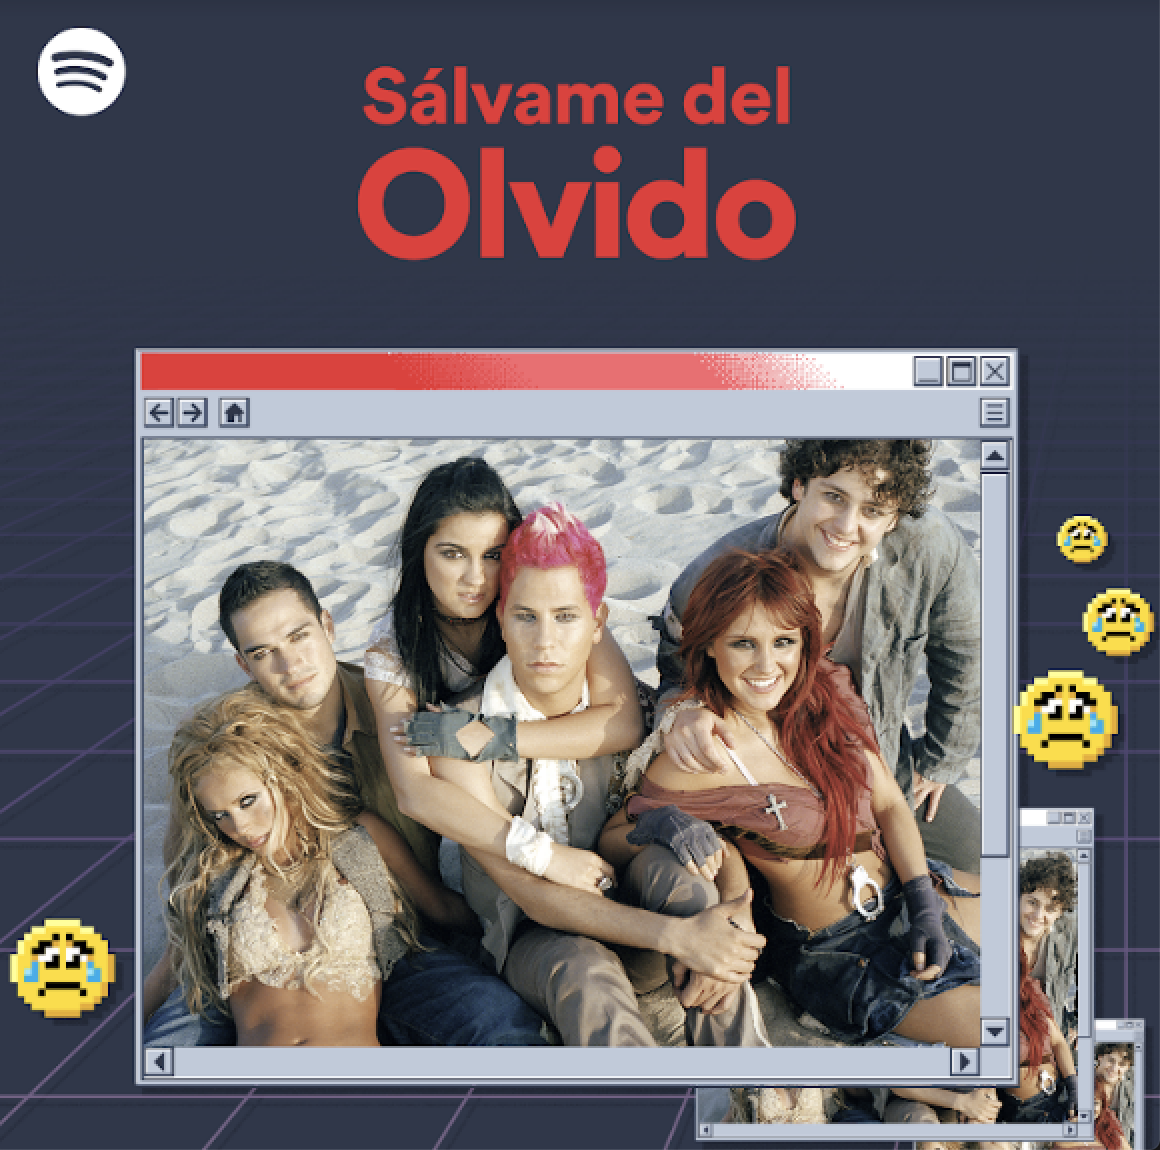 RBD playlist spotify this is